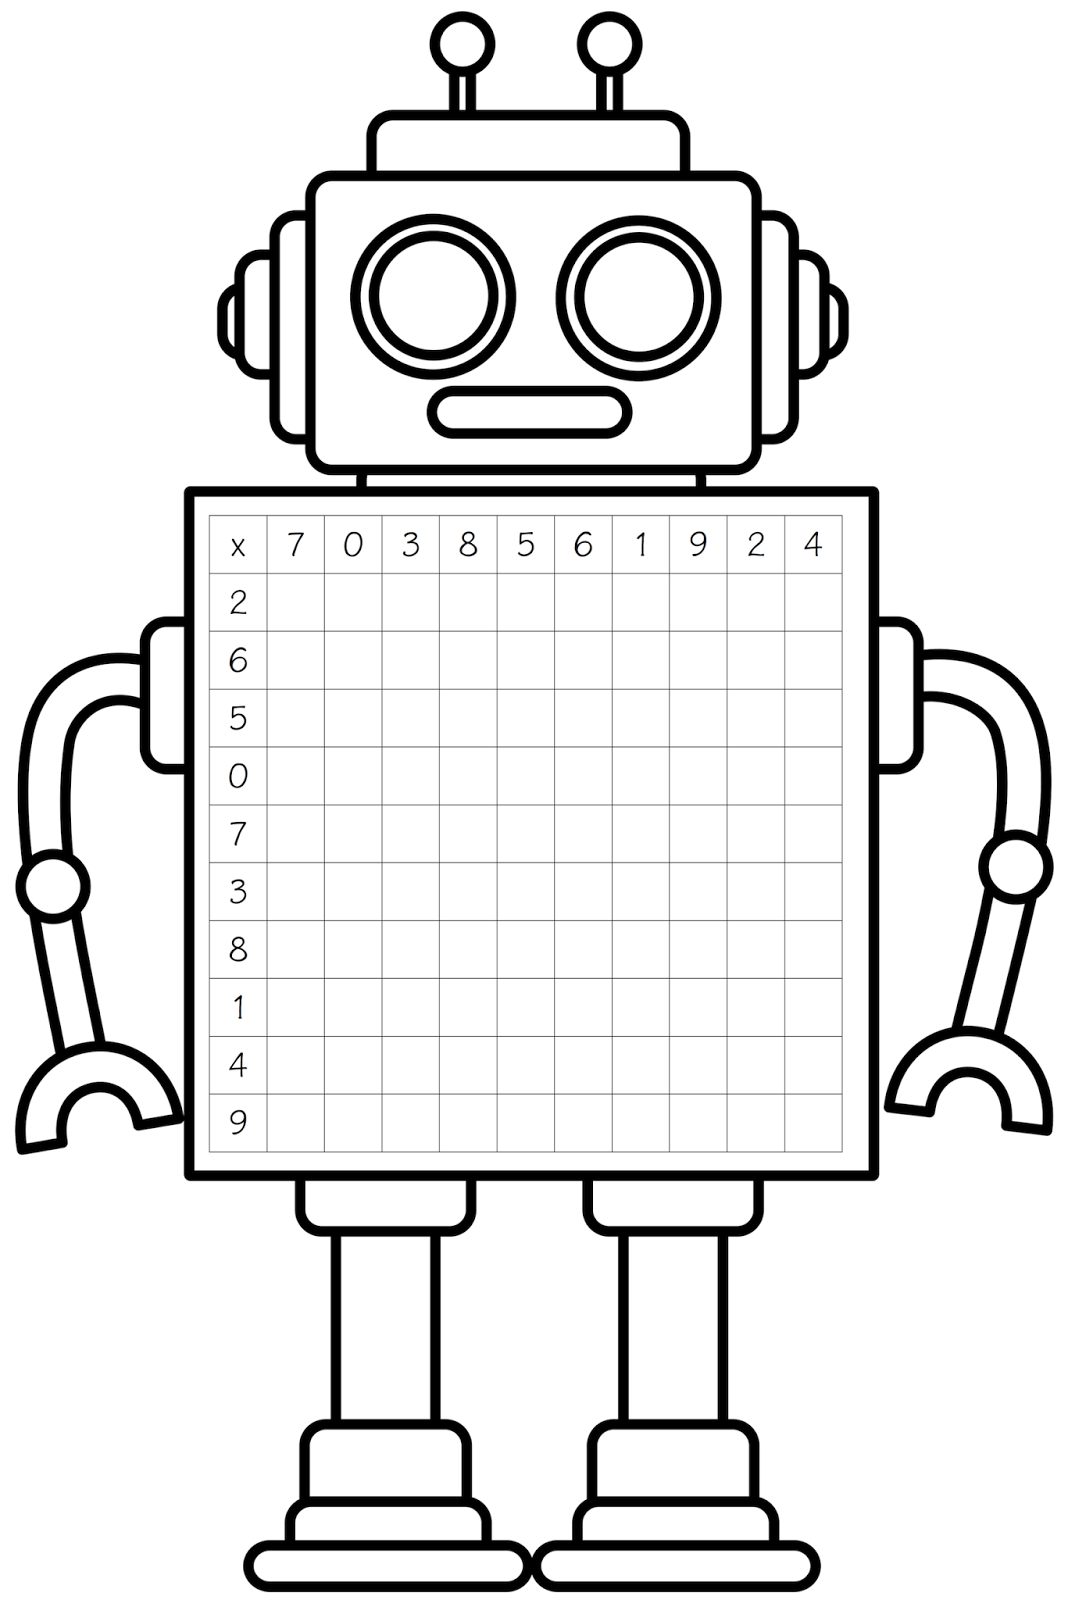 Simple robot with balloon clipart black and white clipart free library Free Robot Cliparts Black, Download Free Clip Art, Free Clip ... clipart free library